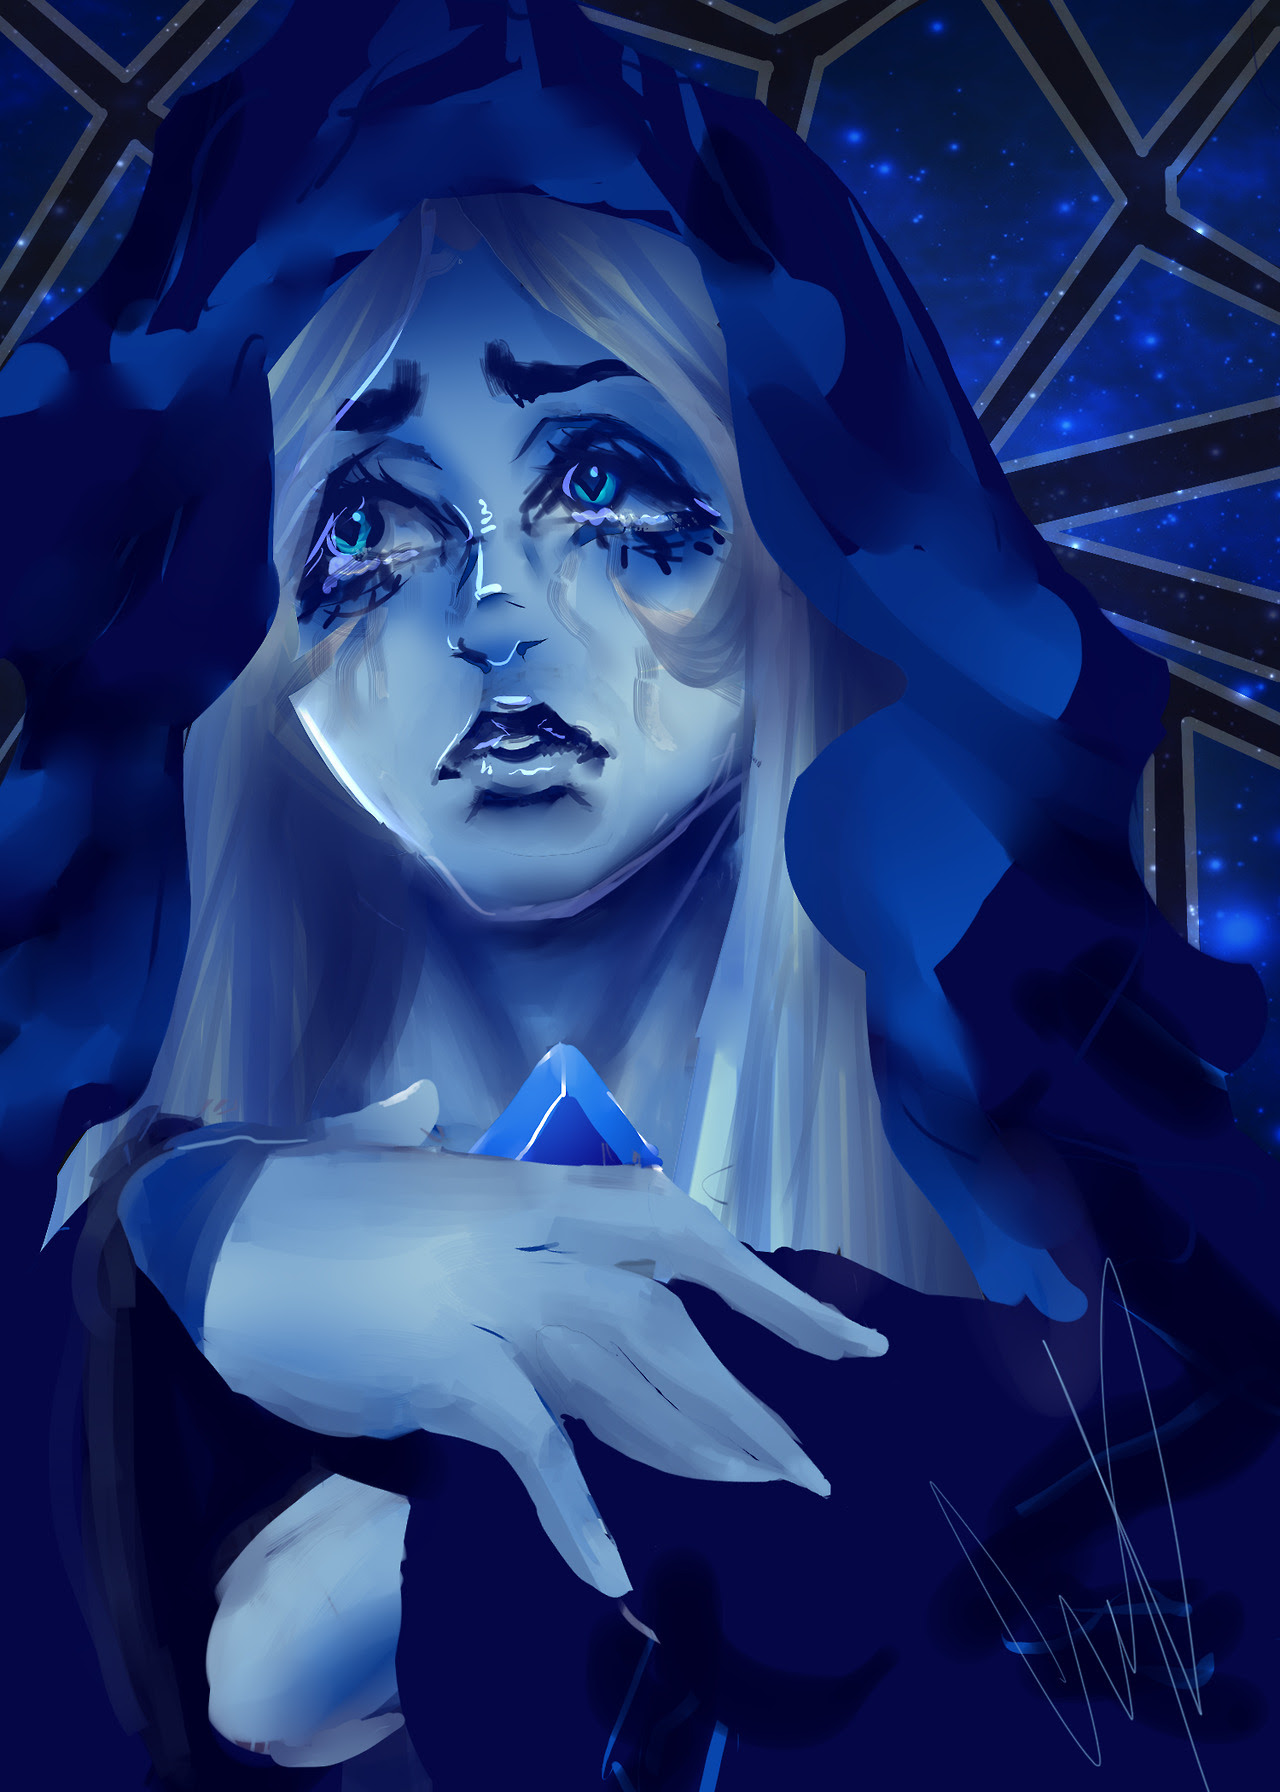 Blue Diamond. I was too lazy to finish it